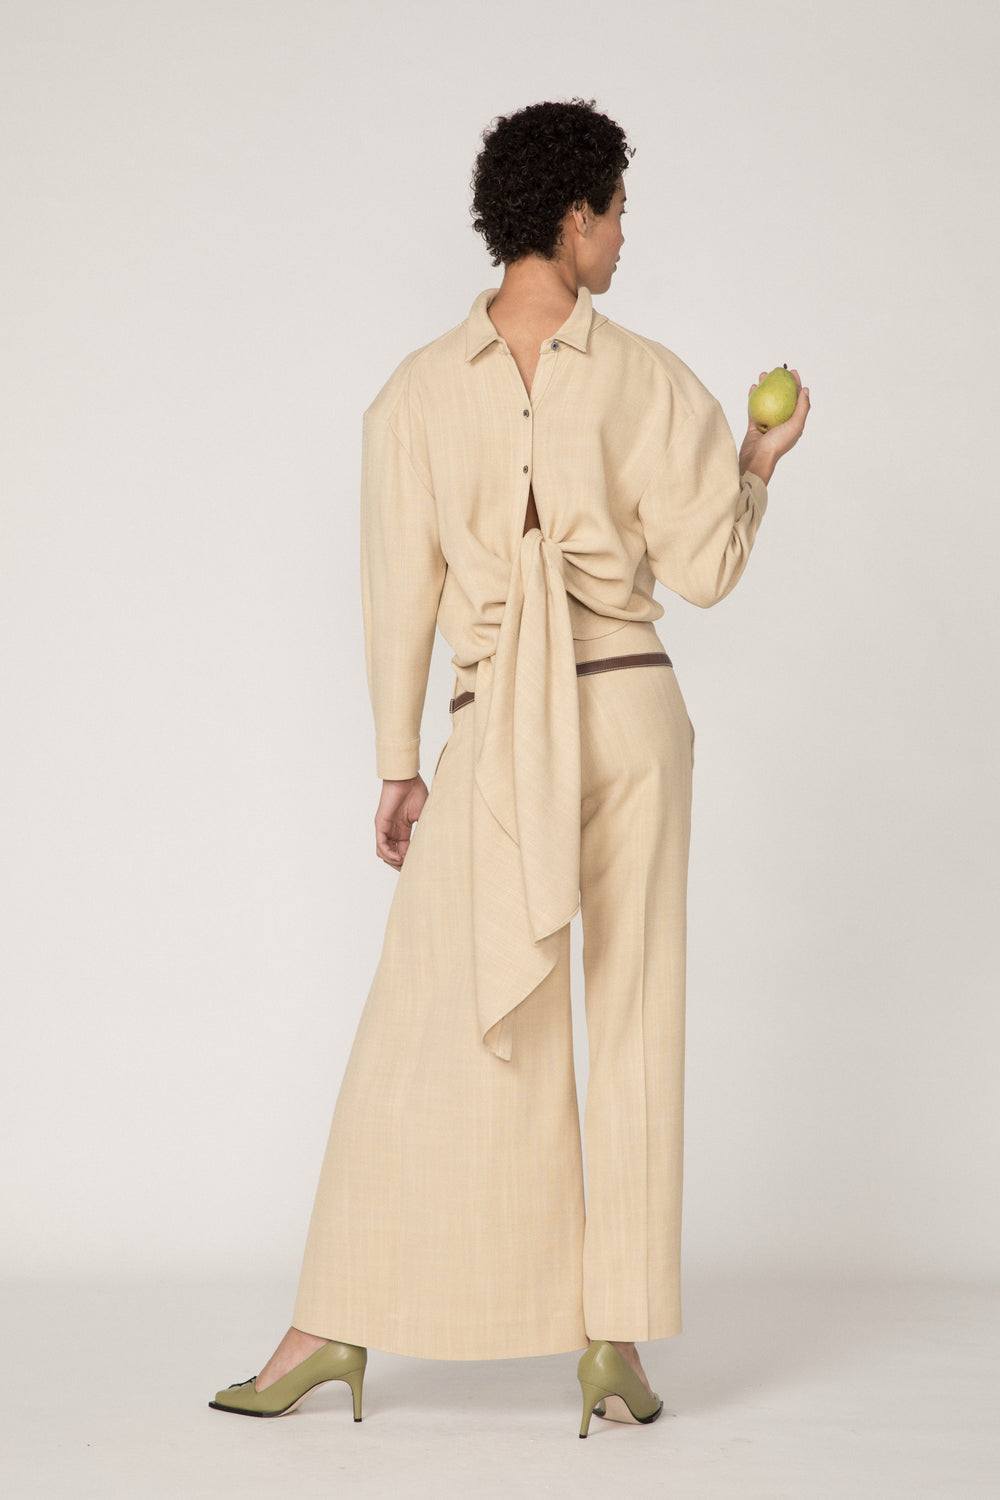 Rosie Assoulin Pre-Fall 2019 Criss Cross Applesauce Pant. Relaxed fit pant. Faux leather ribbons. Asymmetrical slit. Cream. 100% Viscose. Sizes 0 - 12.